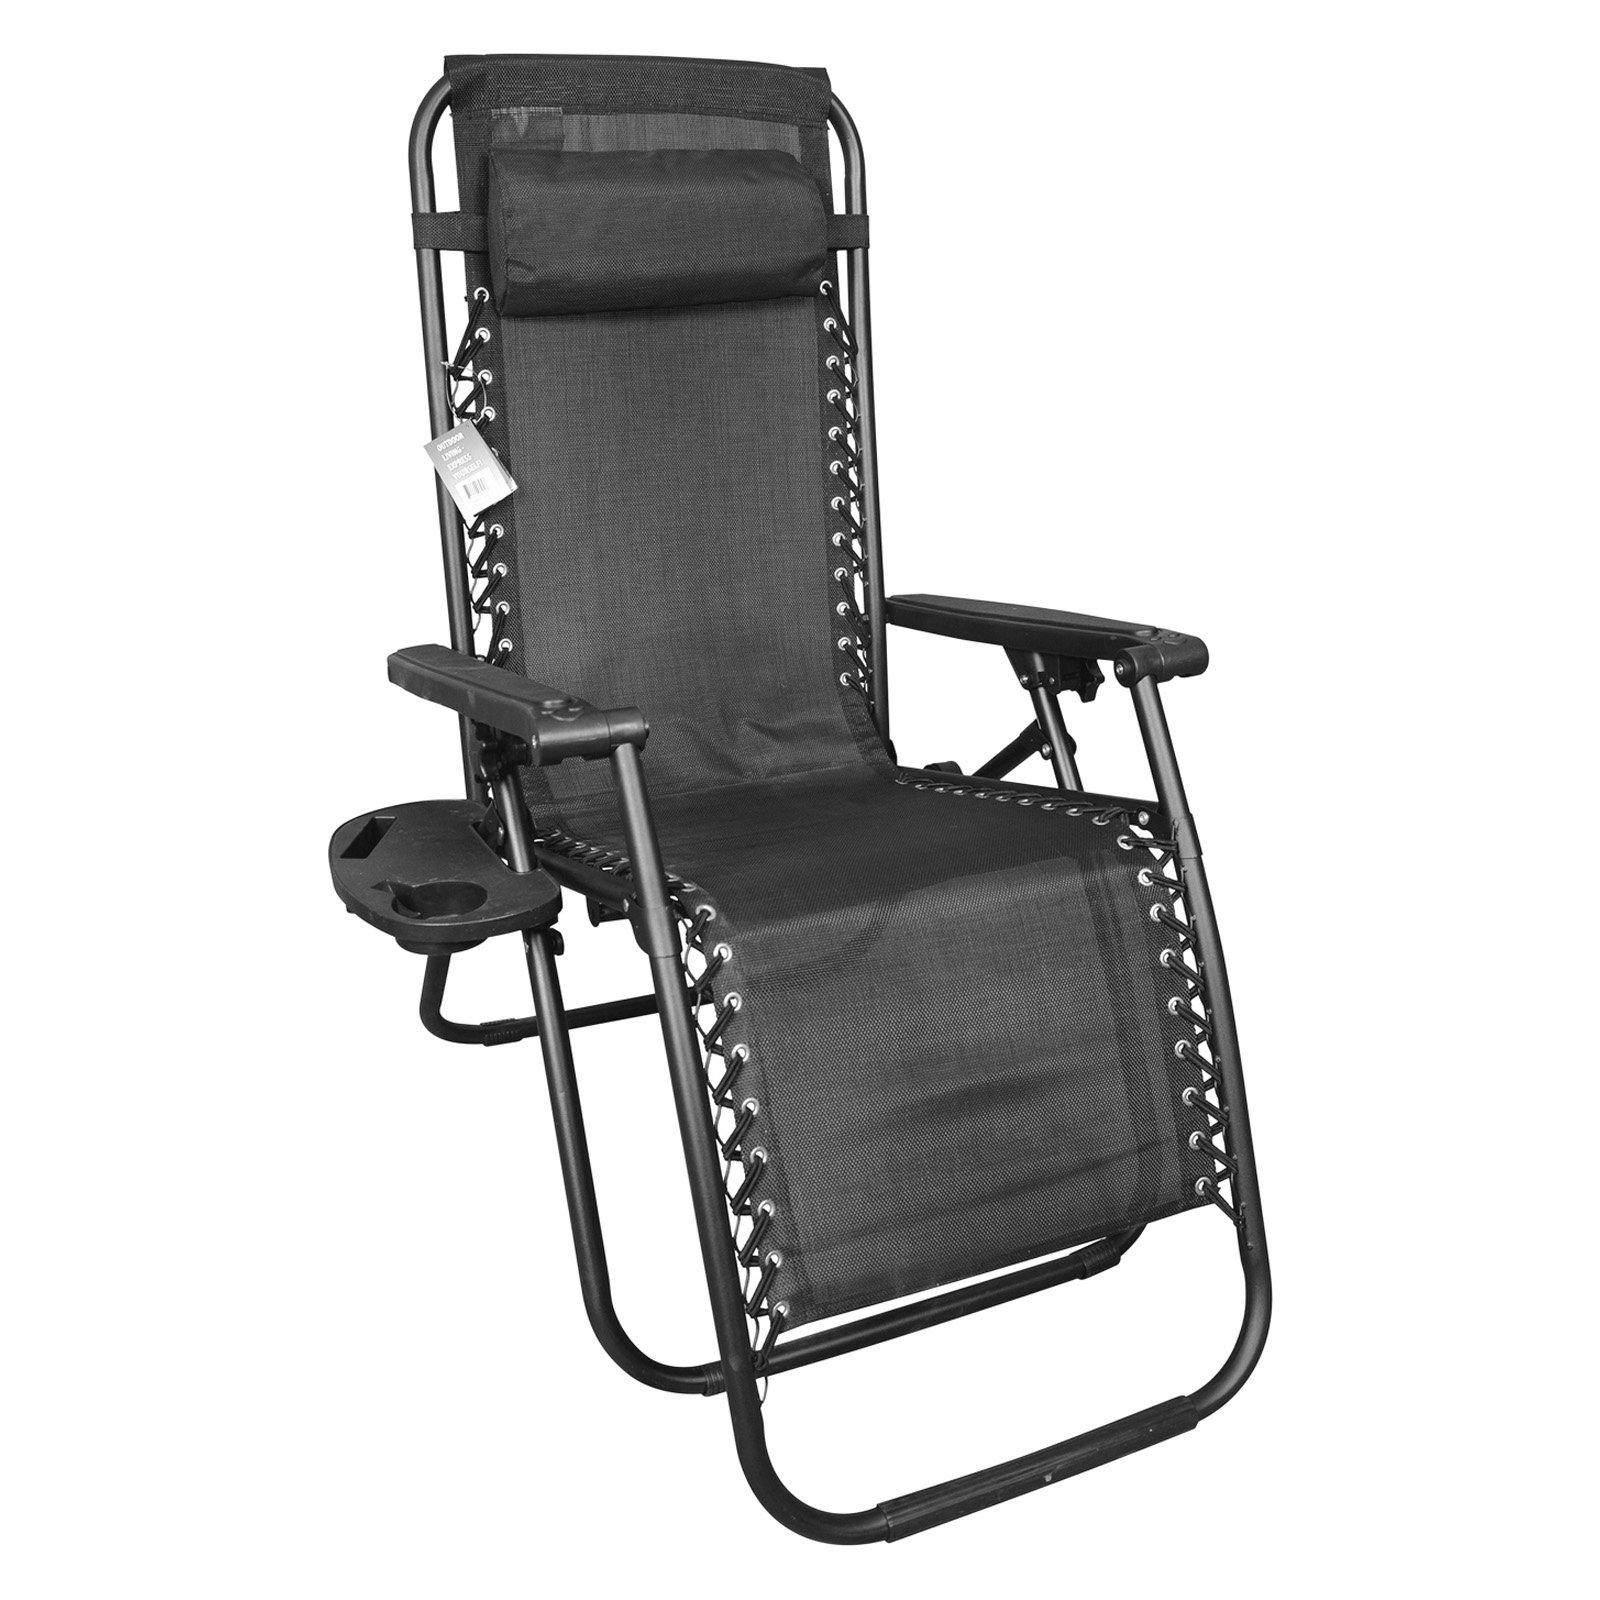 Backyard Expressions Sling Fabric Steel Anti-Gravity Chair with Removable Cupholder